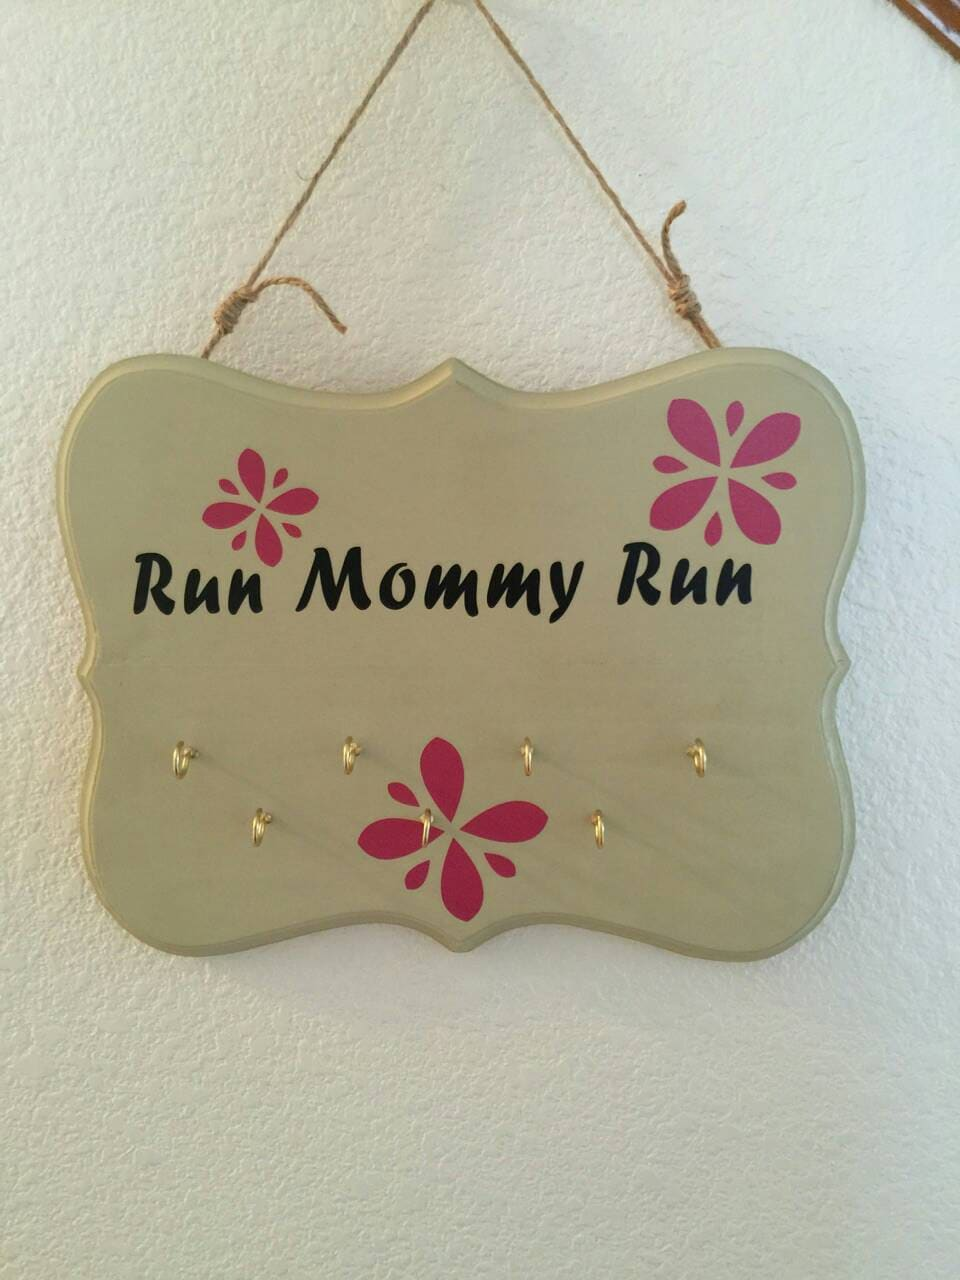 Medal Holder Jewerly Holder Wall Decoration Customize